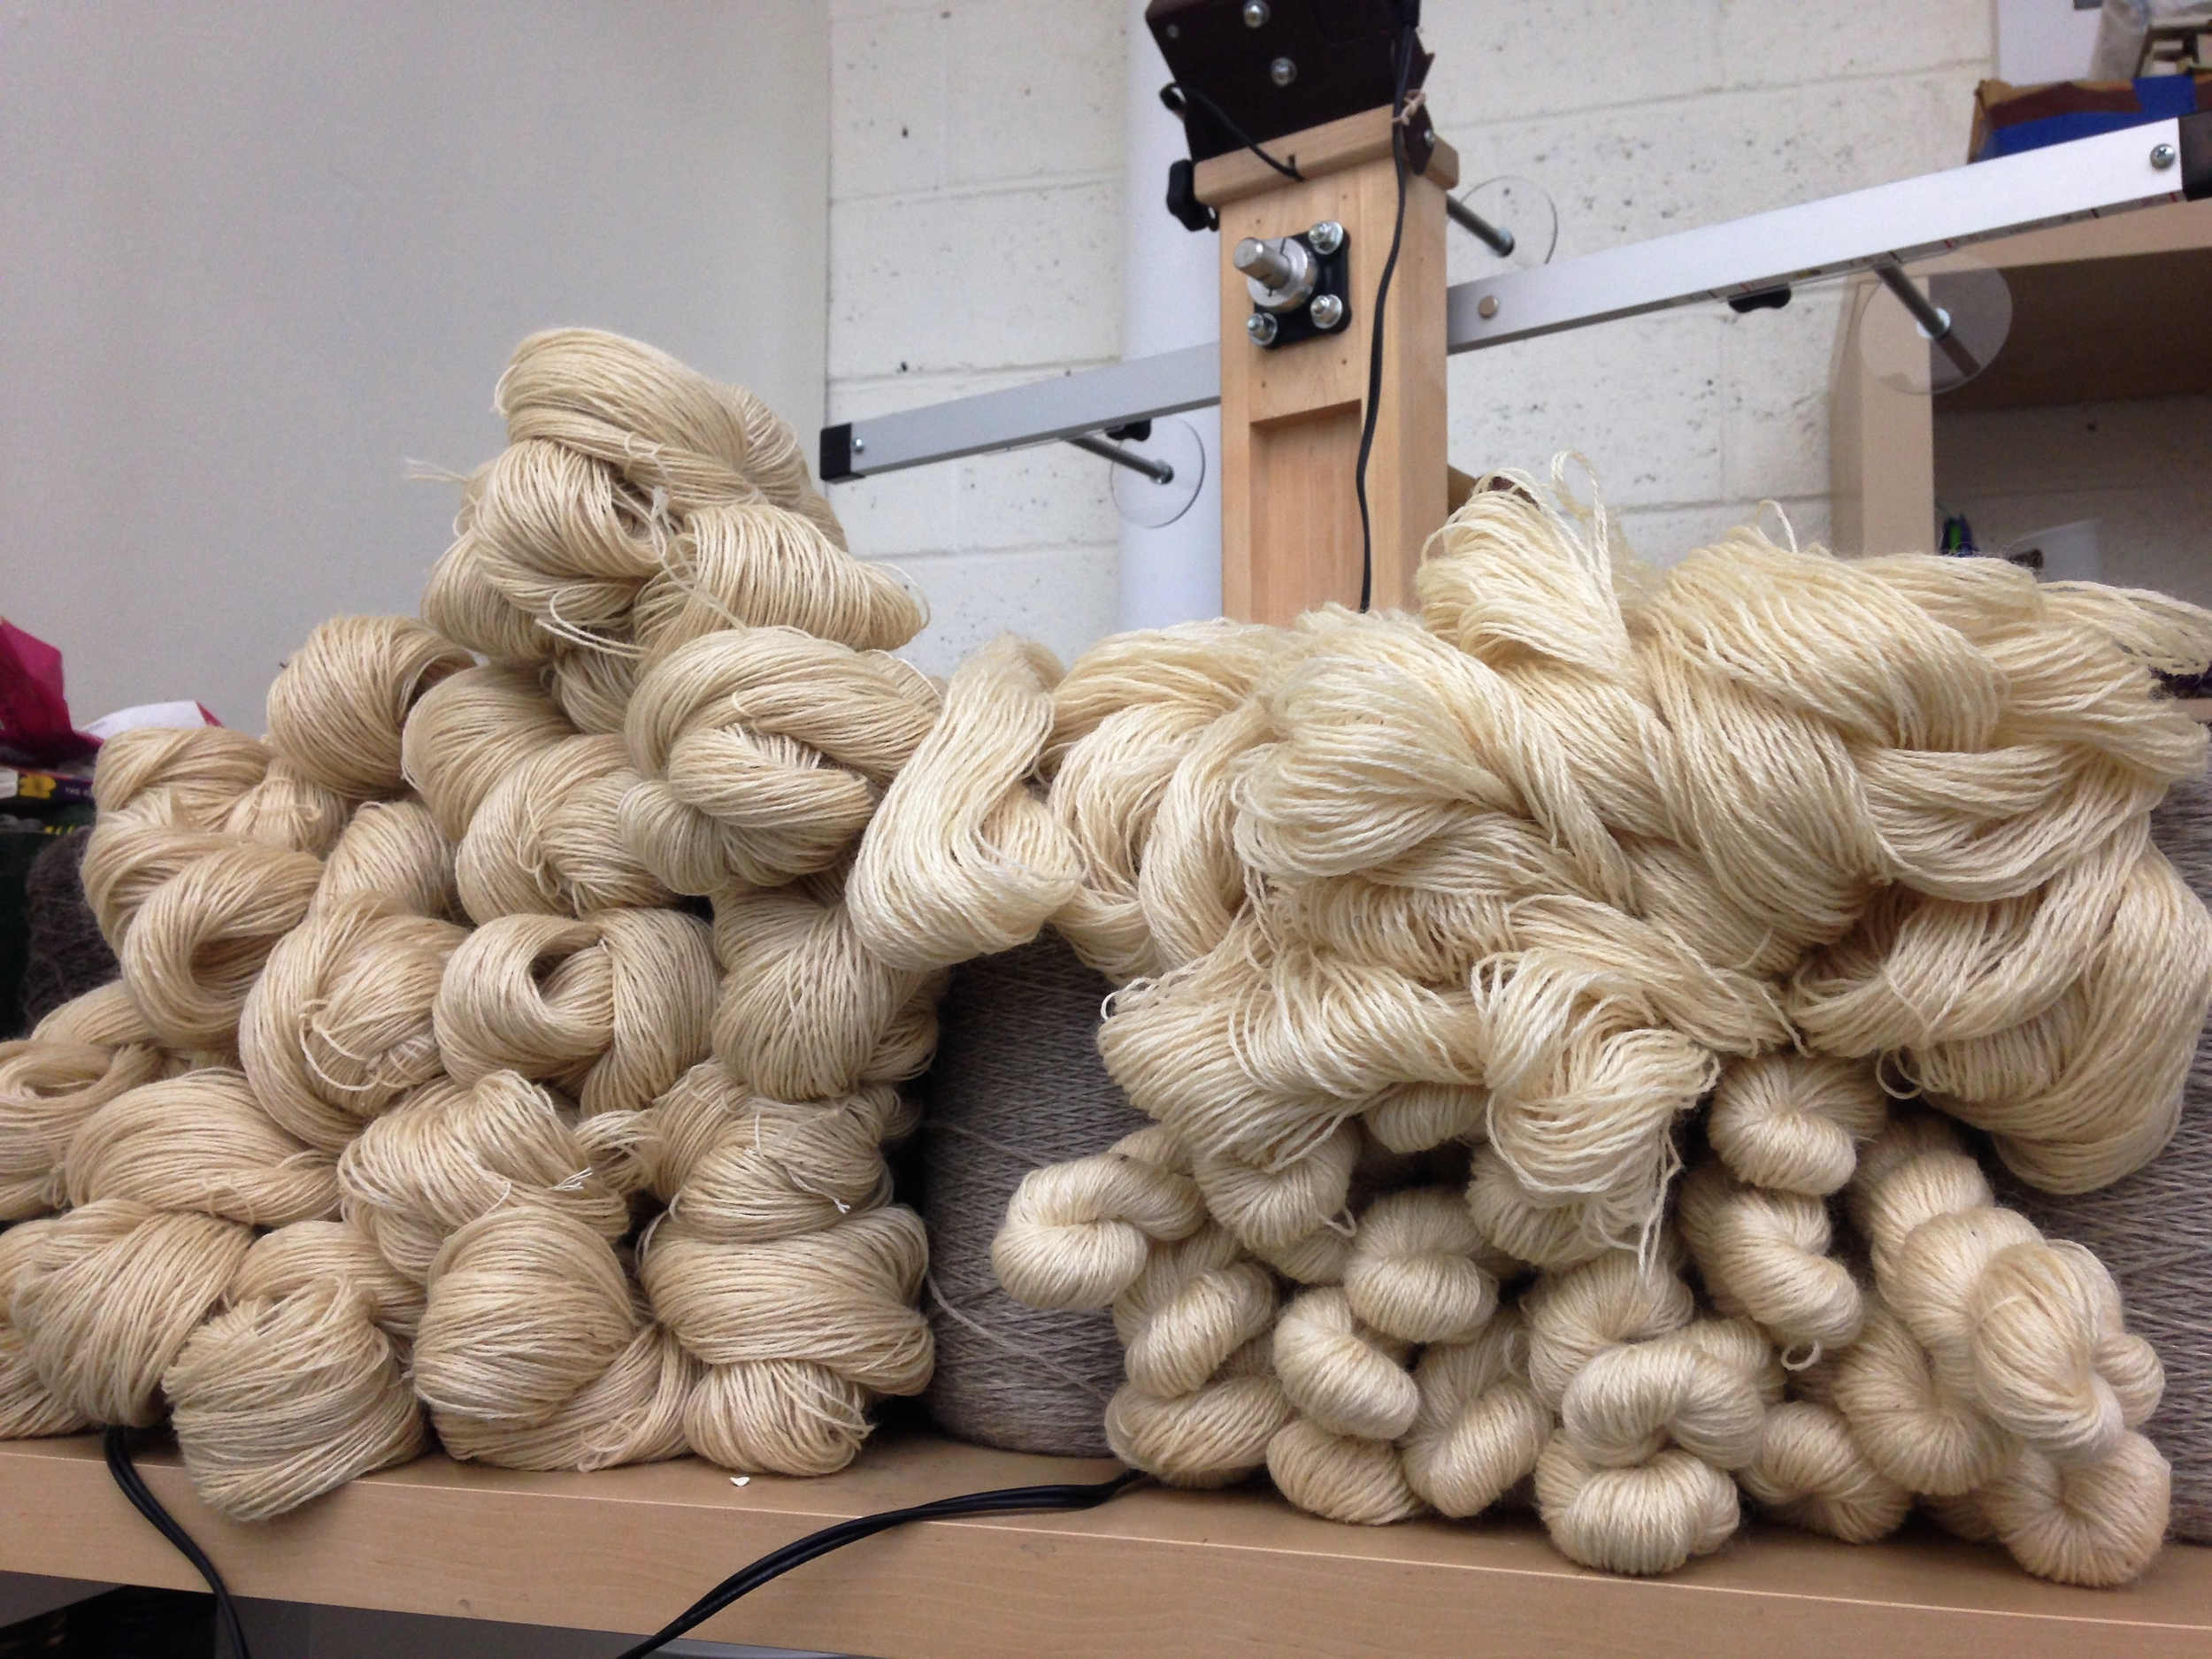 Yarn comes from the mill on cones - therefore the first step of dyeing is skeining, and skeining, and skeining, and then building a fort with all of the piles of skeined yarn.